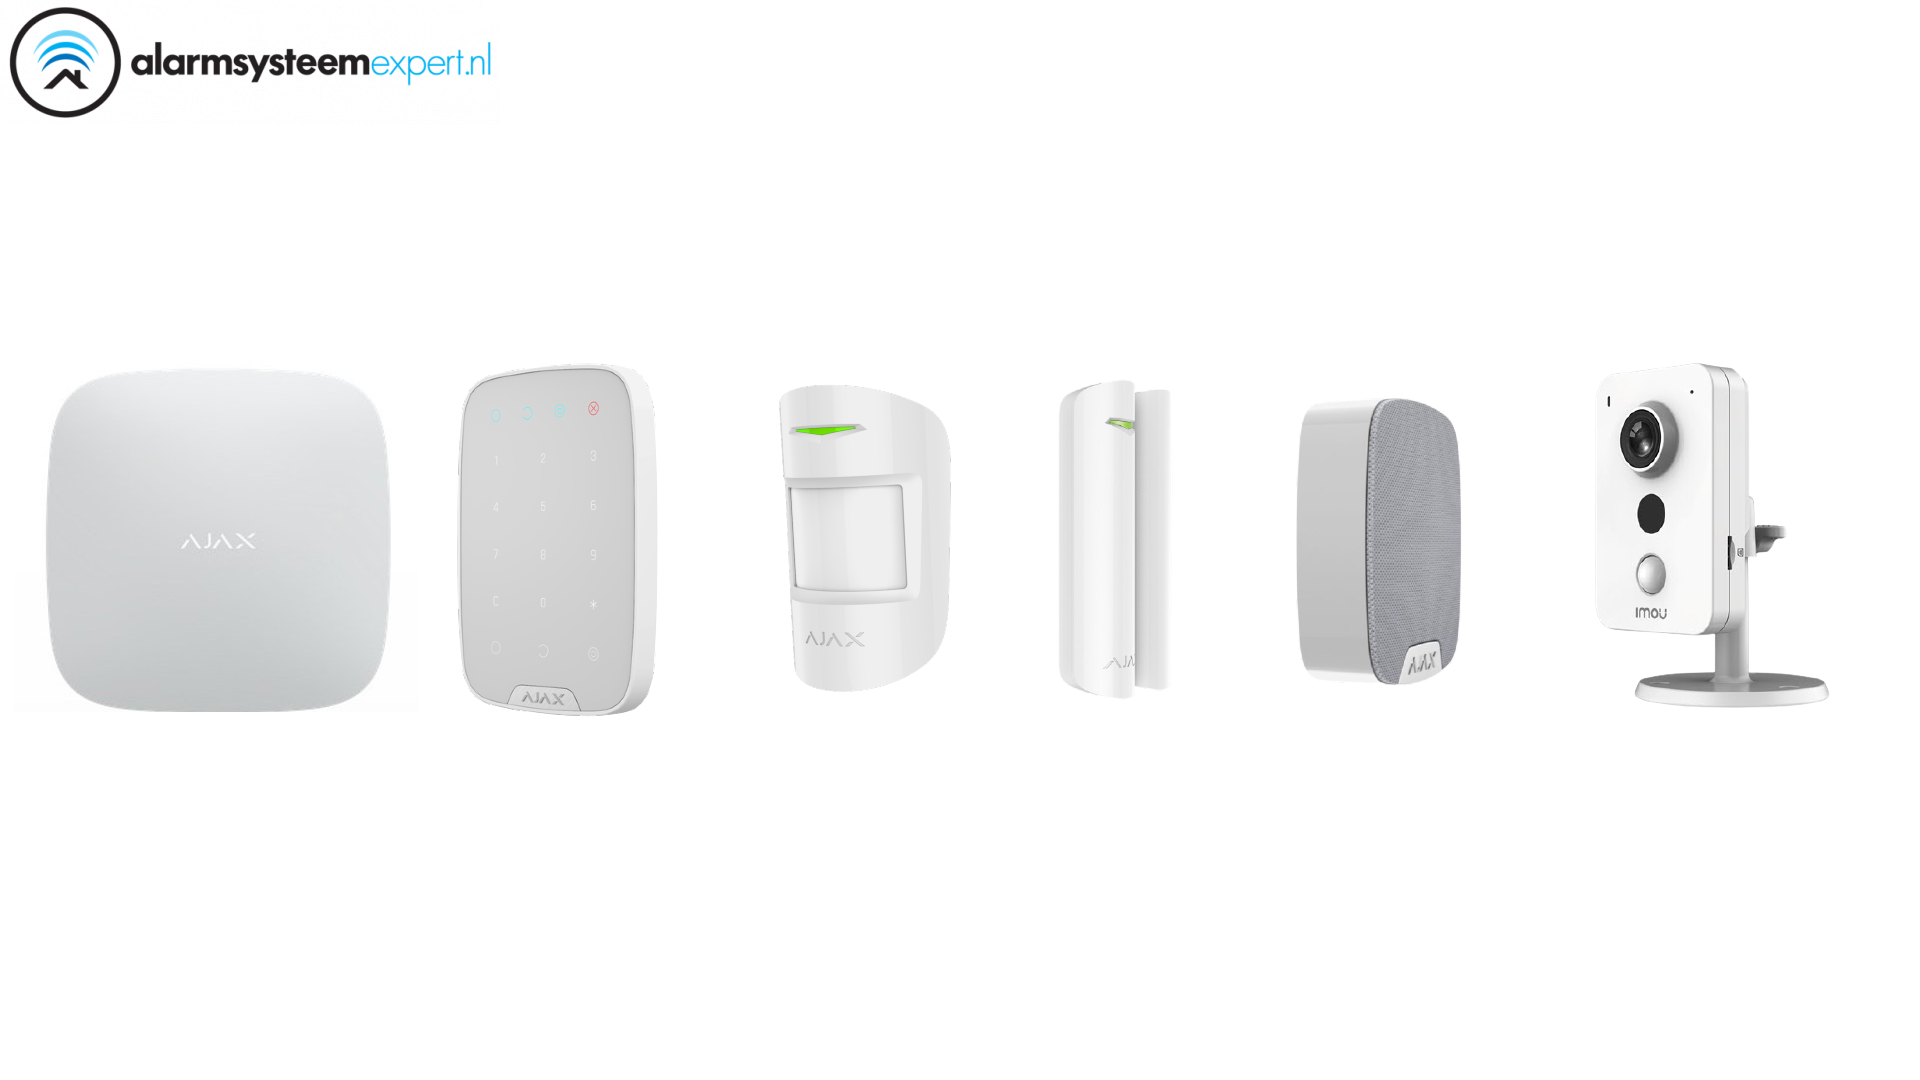 You can use the Ajax alarm system kit as a basis for the wireless Ajax security system.